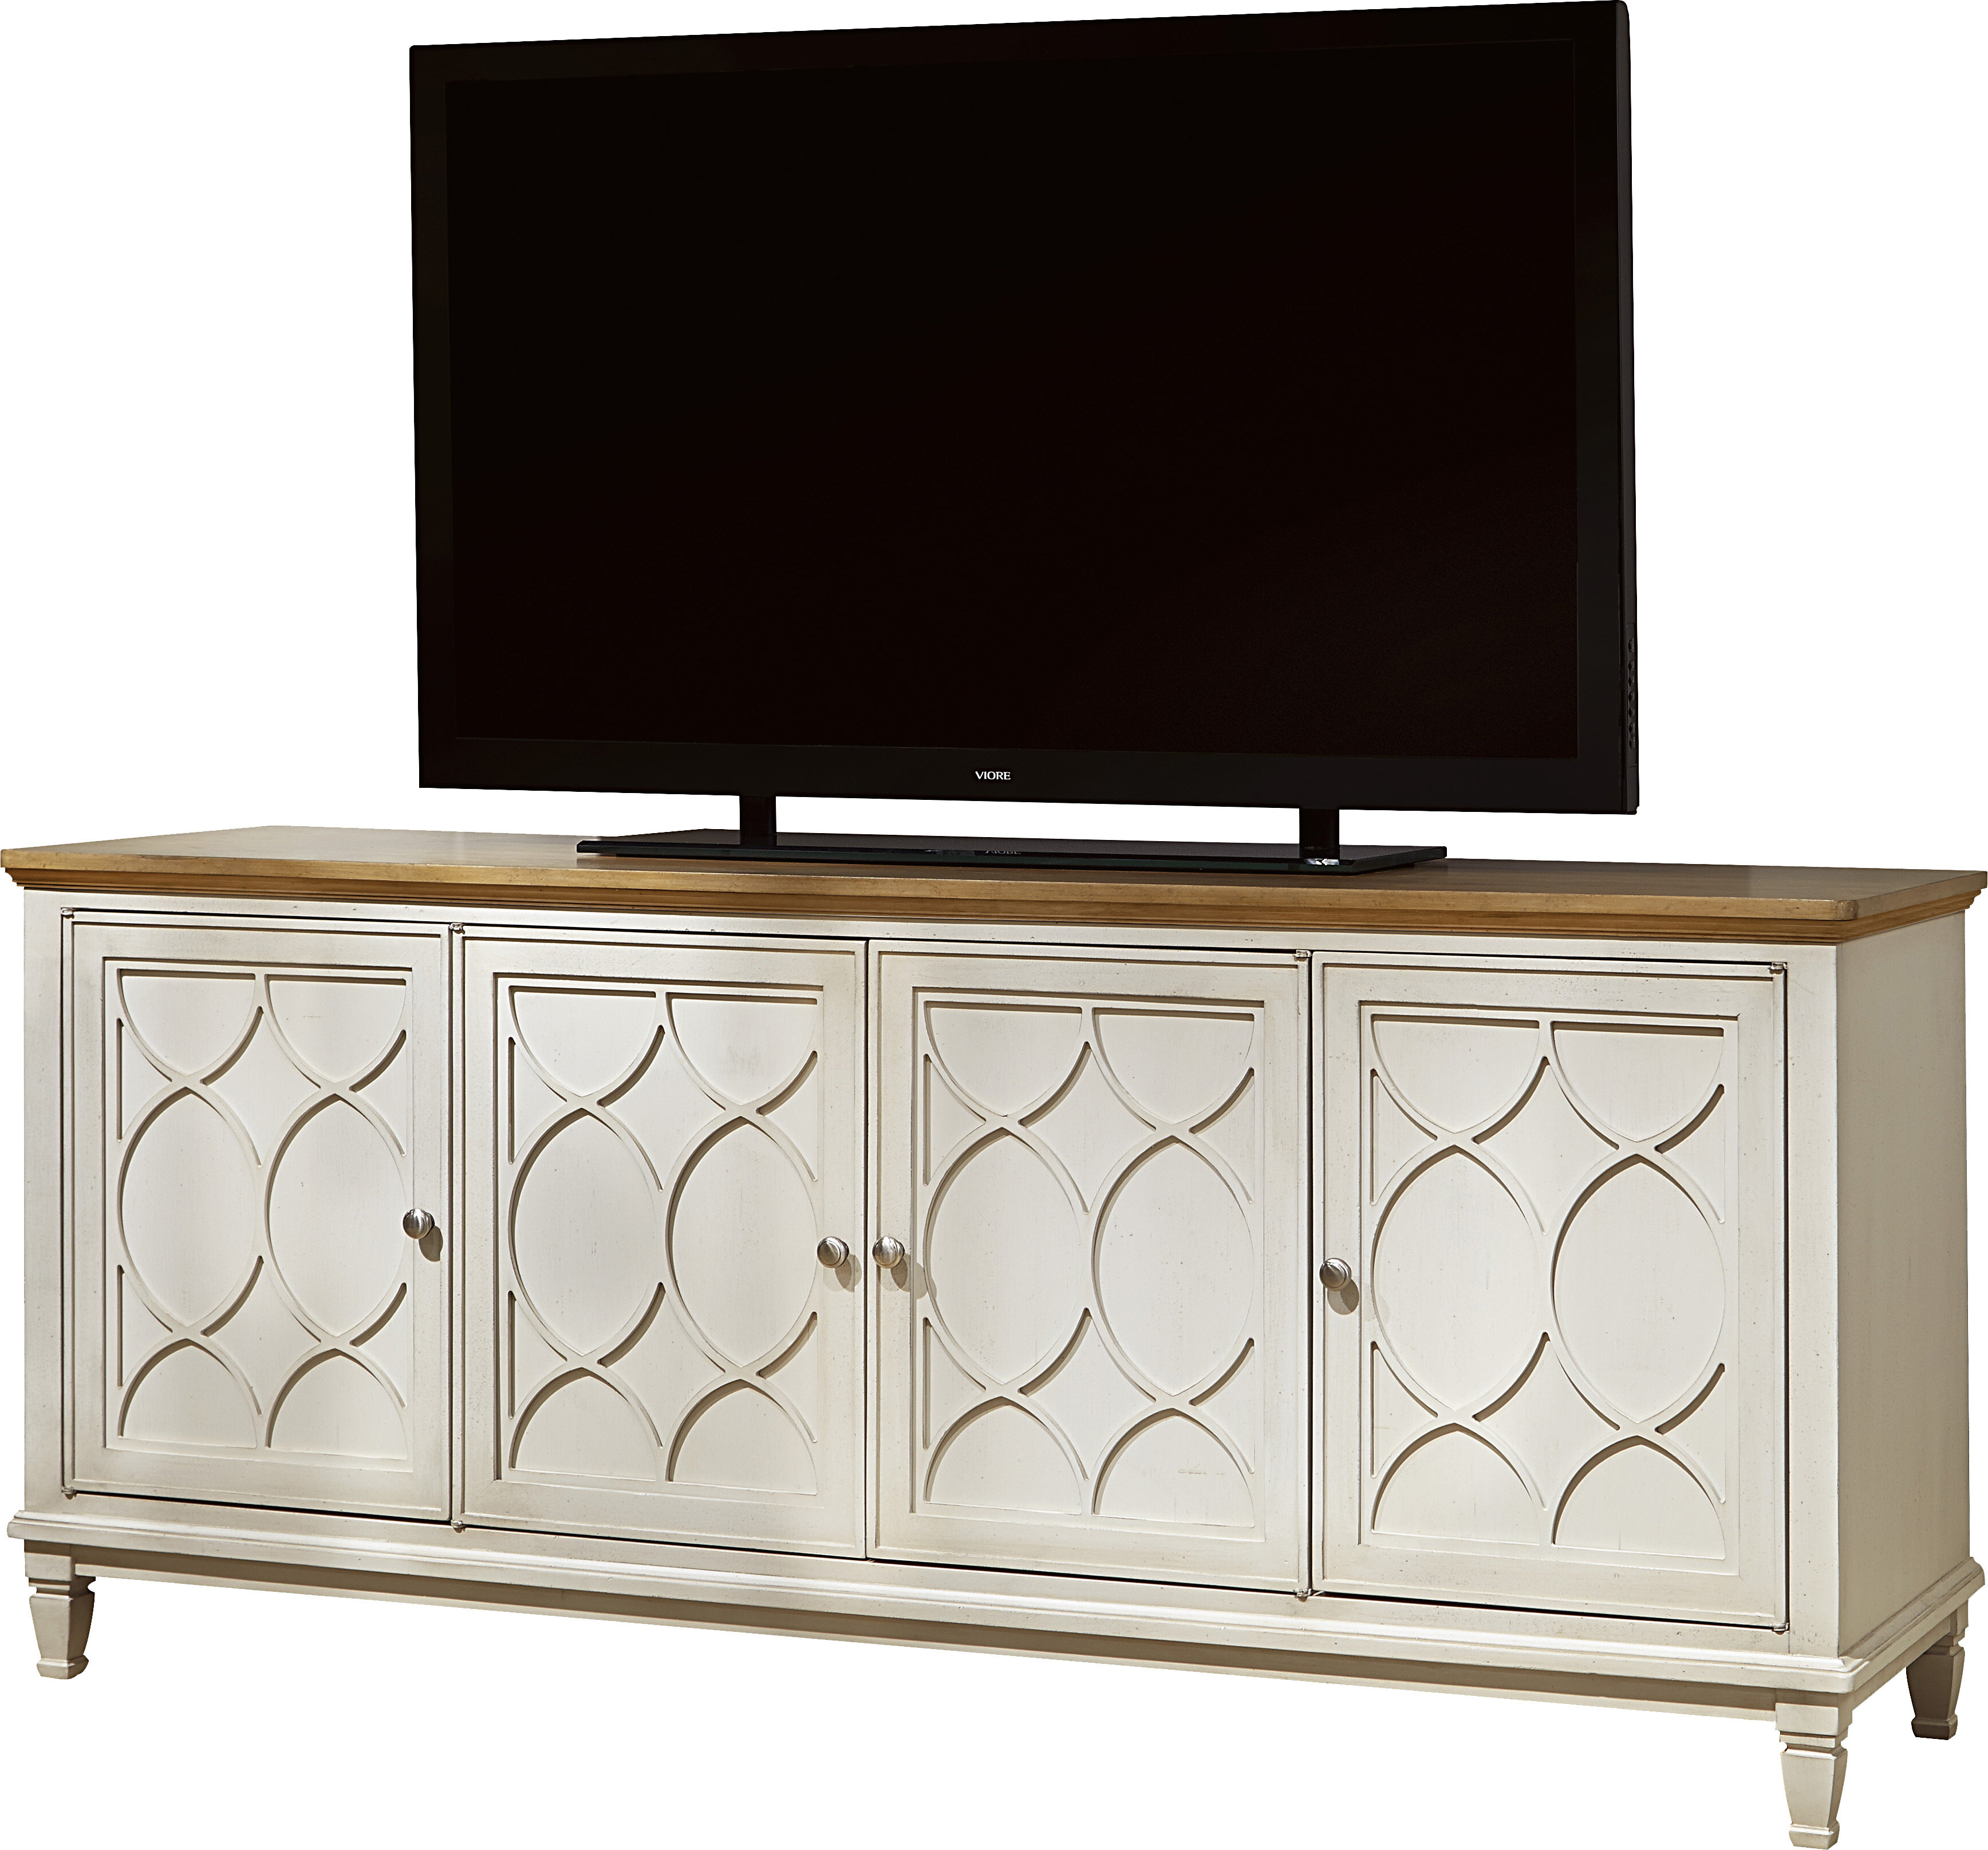 Gave Tv Meubel.Lowrys 76 Tv Stand